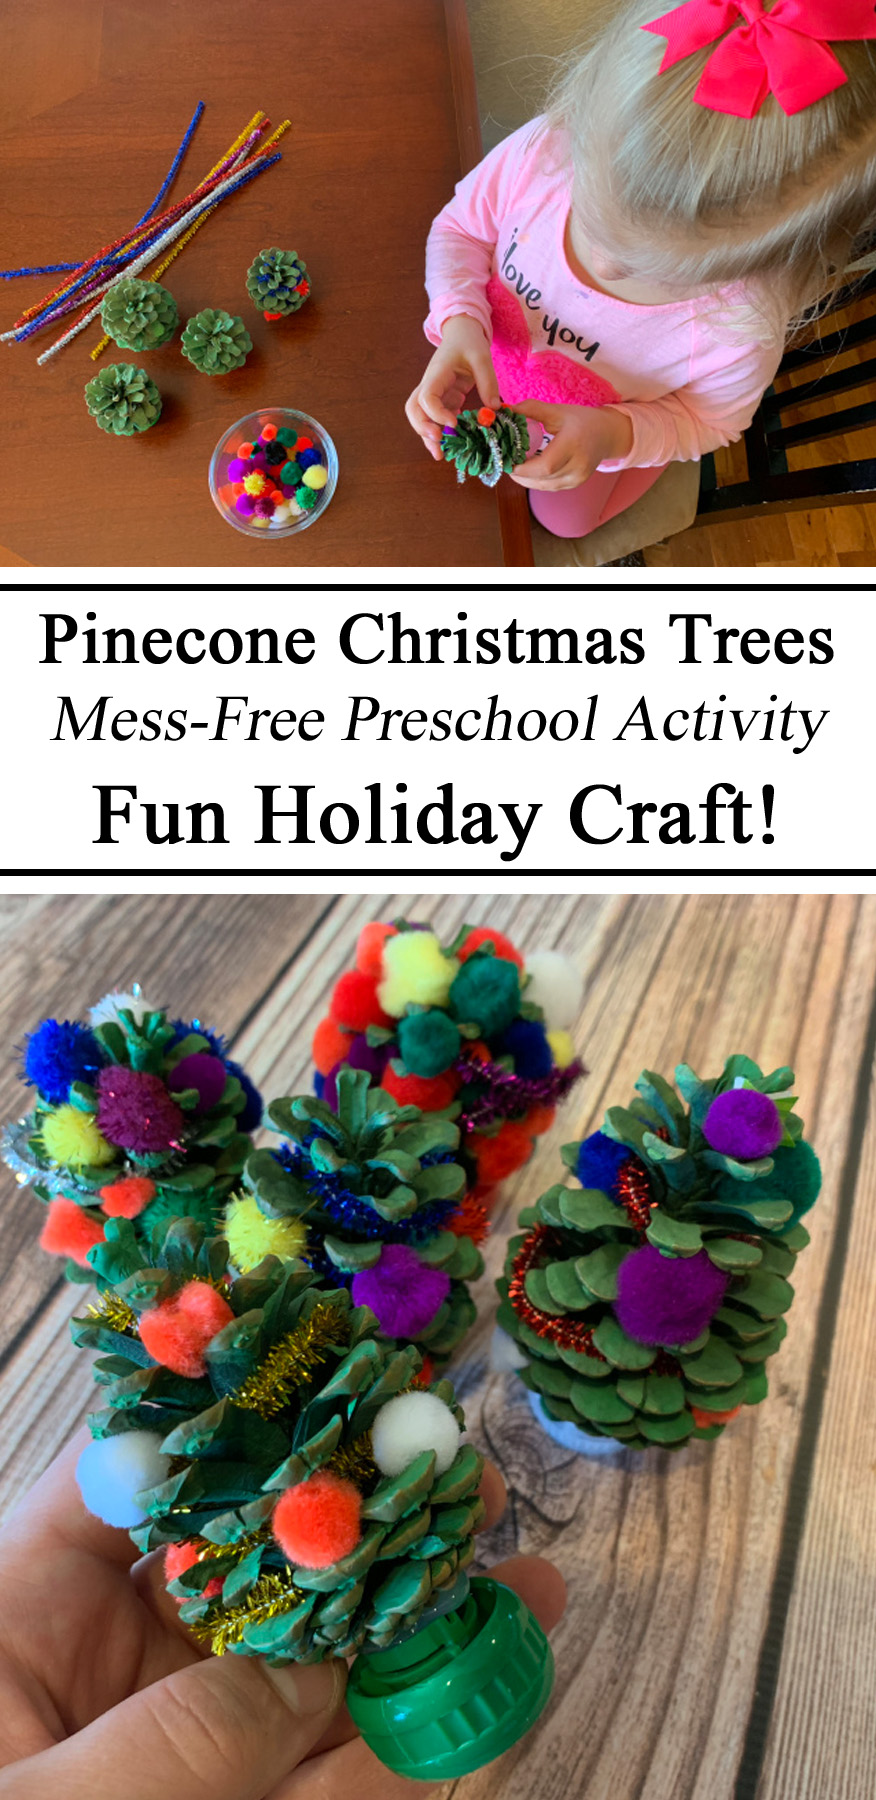 Pinecones, Christmas Crafts, Preschool Activities, Christmas Trees, Fine Motor Skills, Hands on Learning, Homeschooling